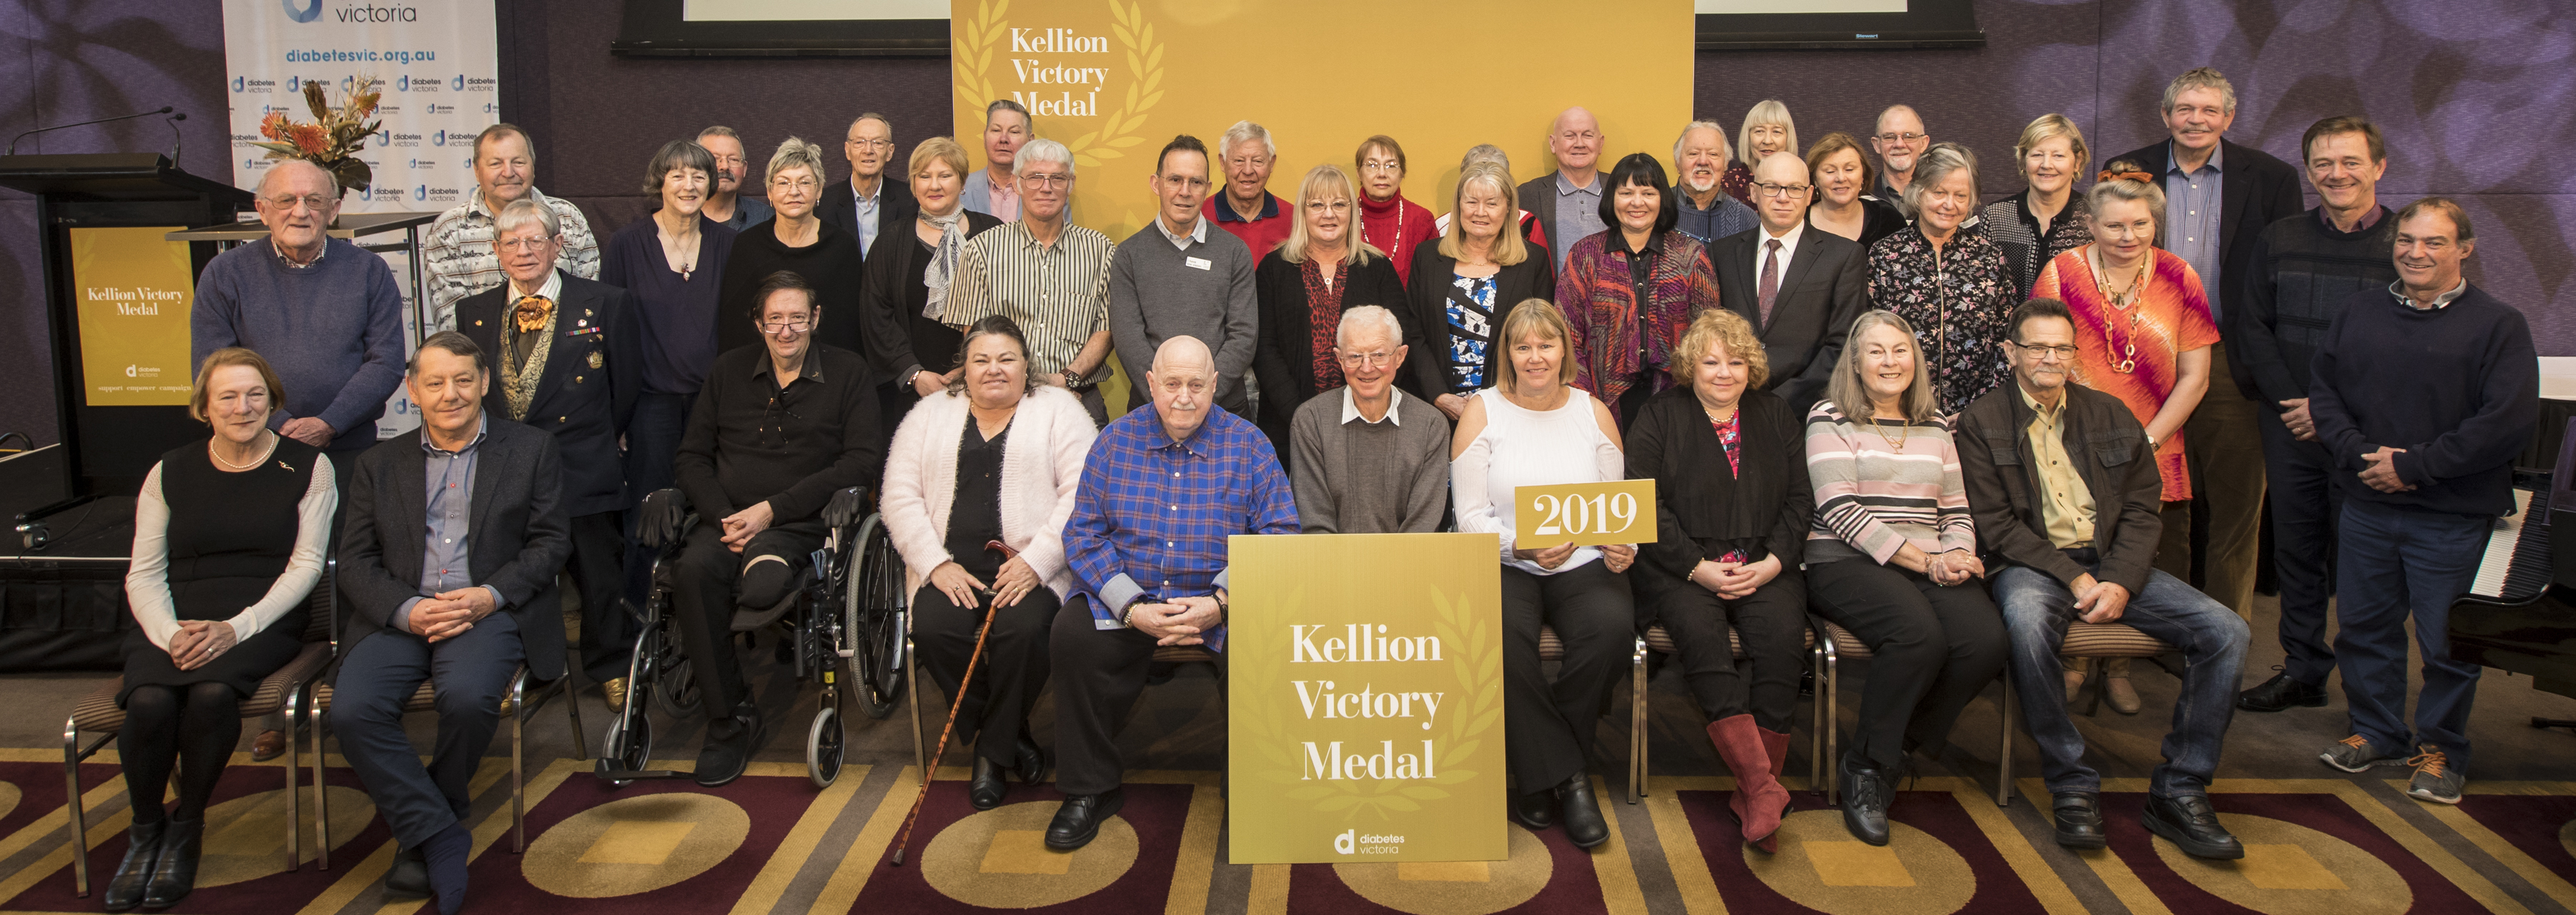 Kellion Award Winners2019